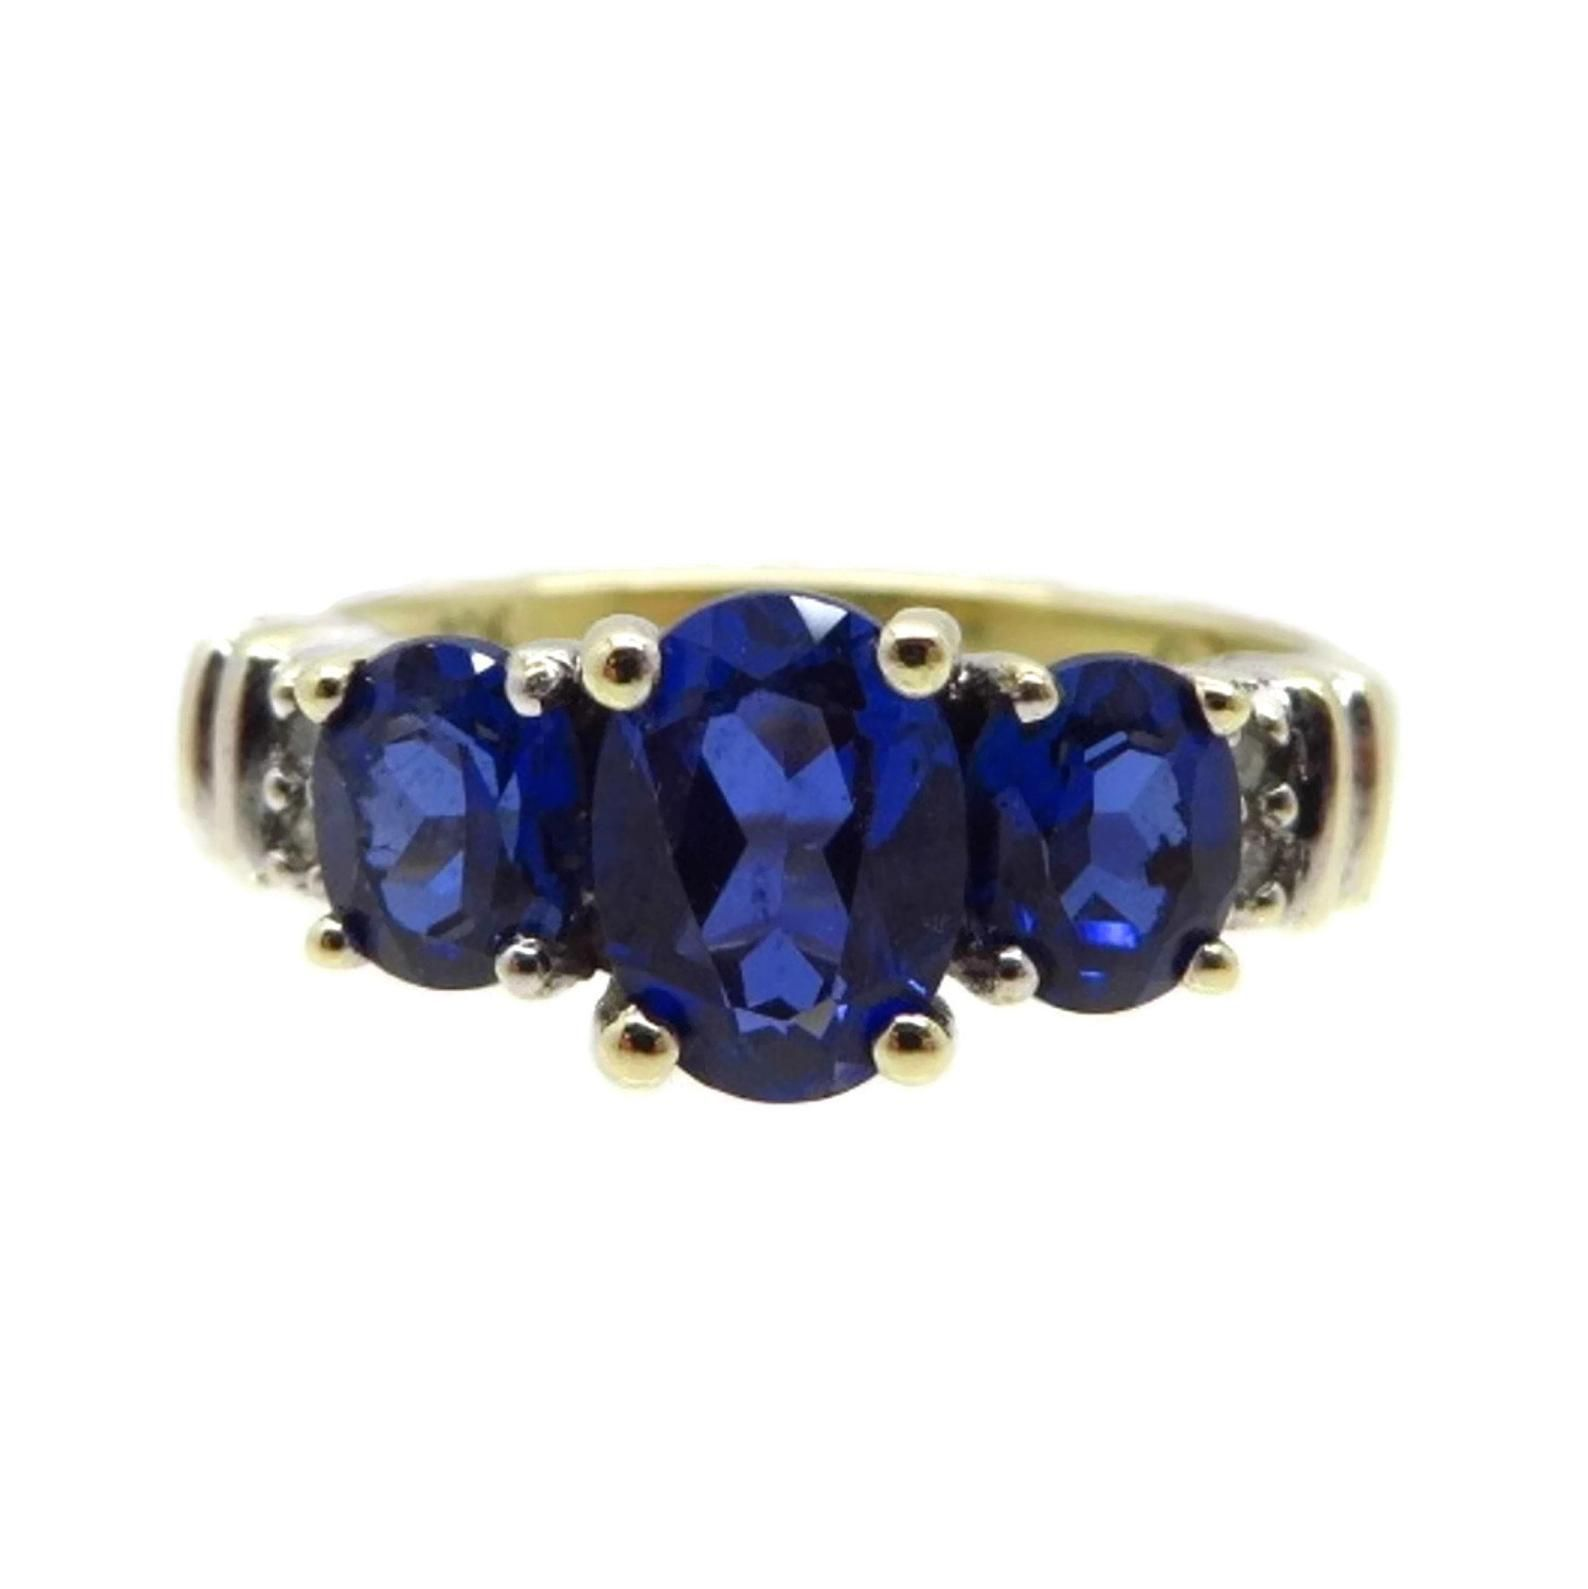 Synthetic Sapphire Diamond Ring Vintage 10k Yellow Gold Multi Stone Ring Size 7 Mothers Day Gift With Images Sapphire Diamond Ring Vintage Vintage Diamond Rings